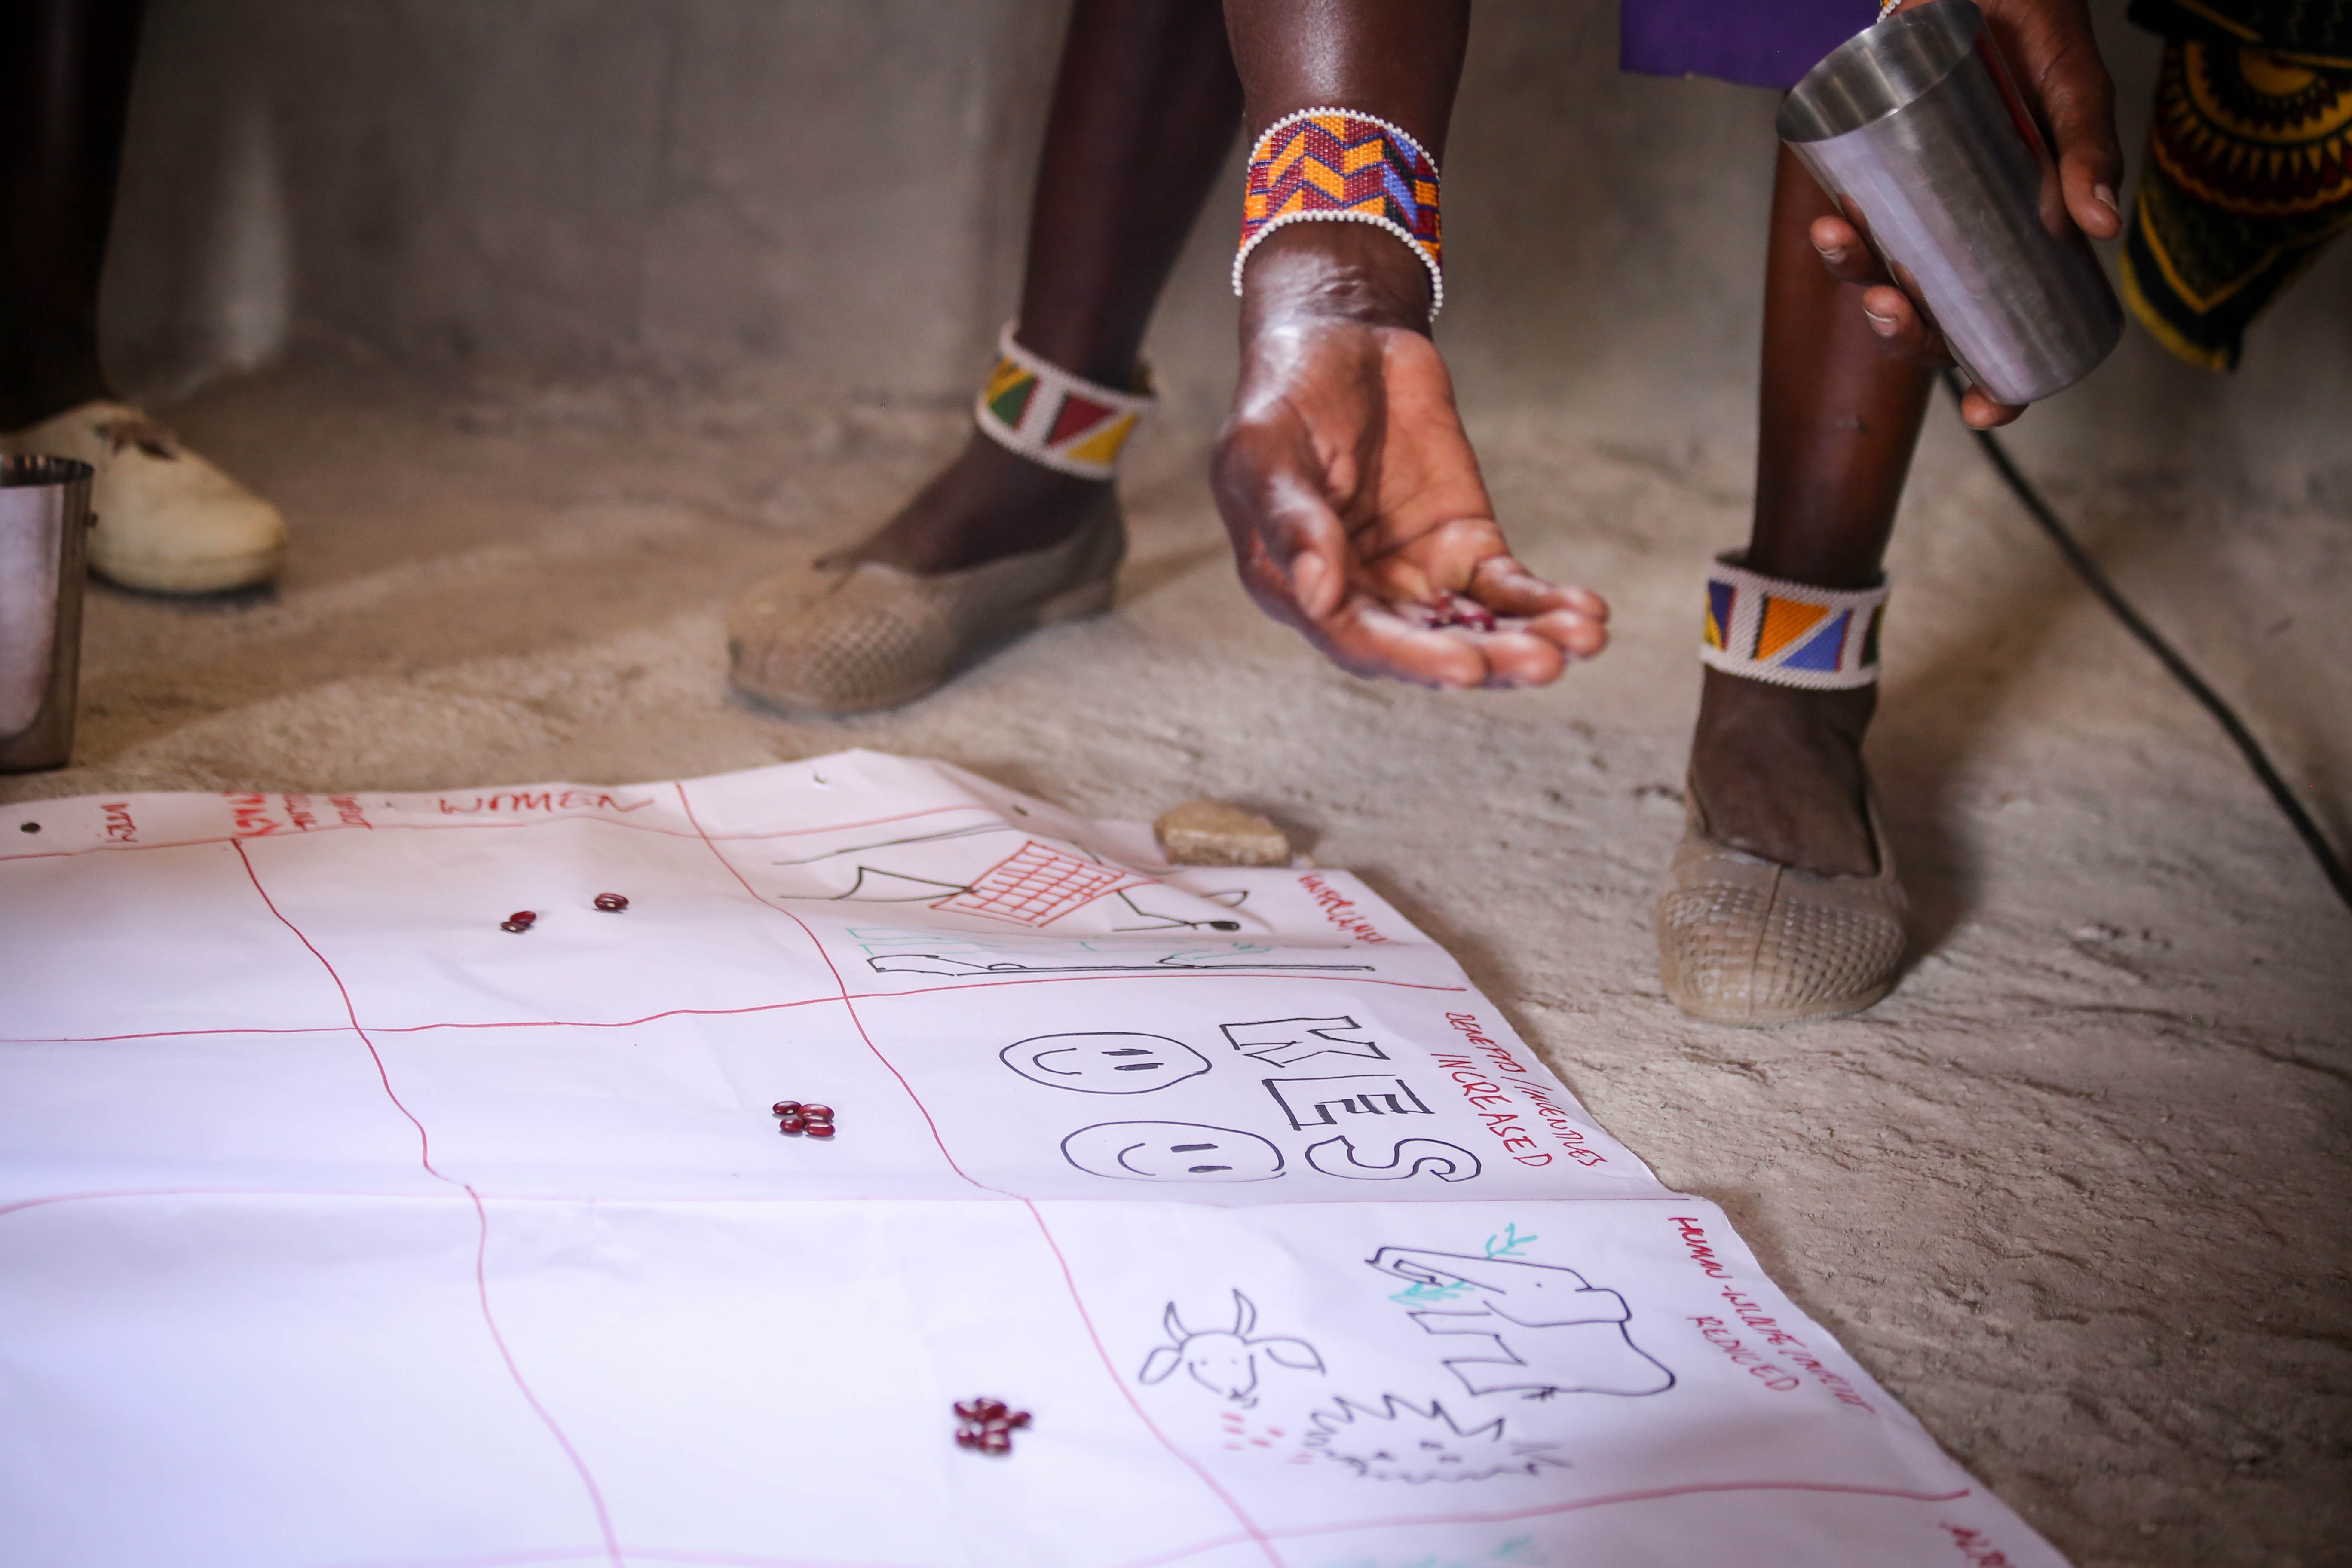 A poster with a table drawn on the floor, and a person  throws seeds on each cell